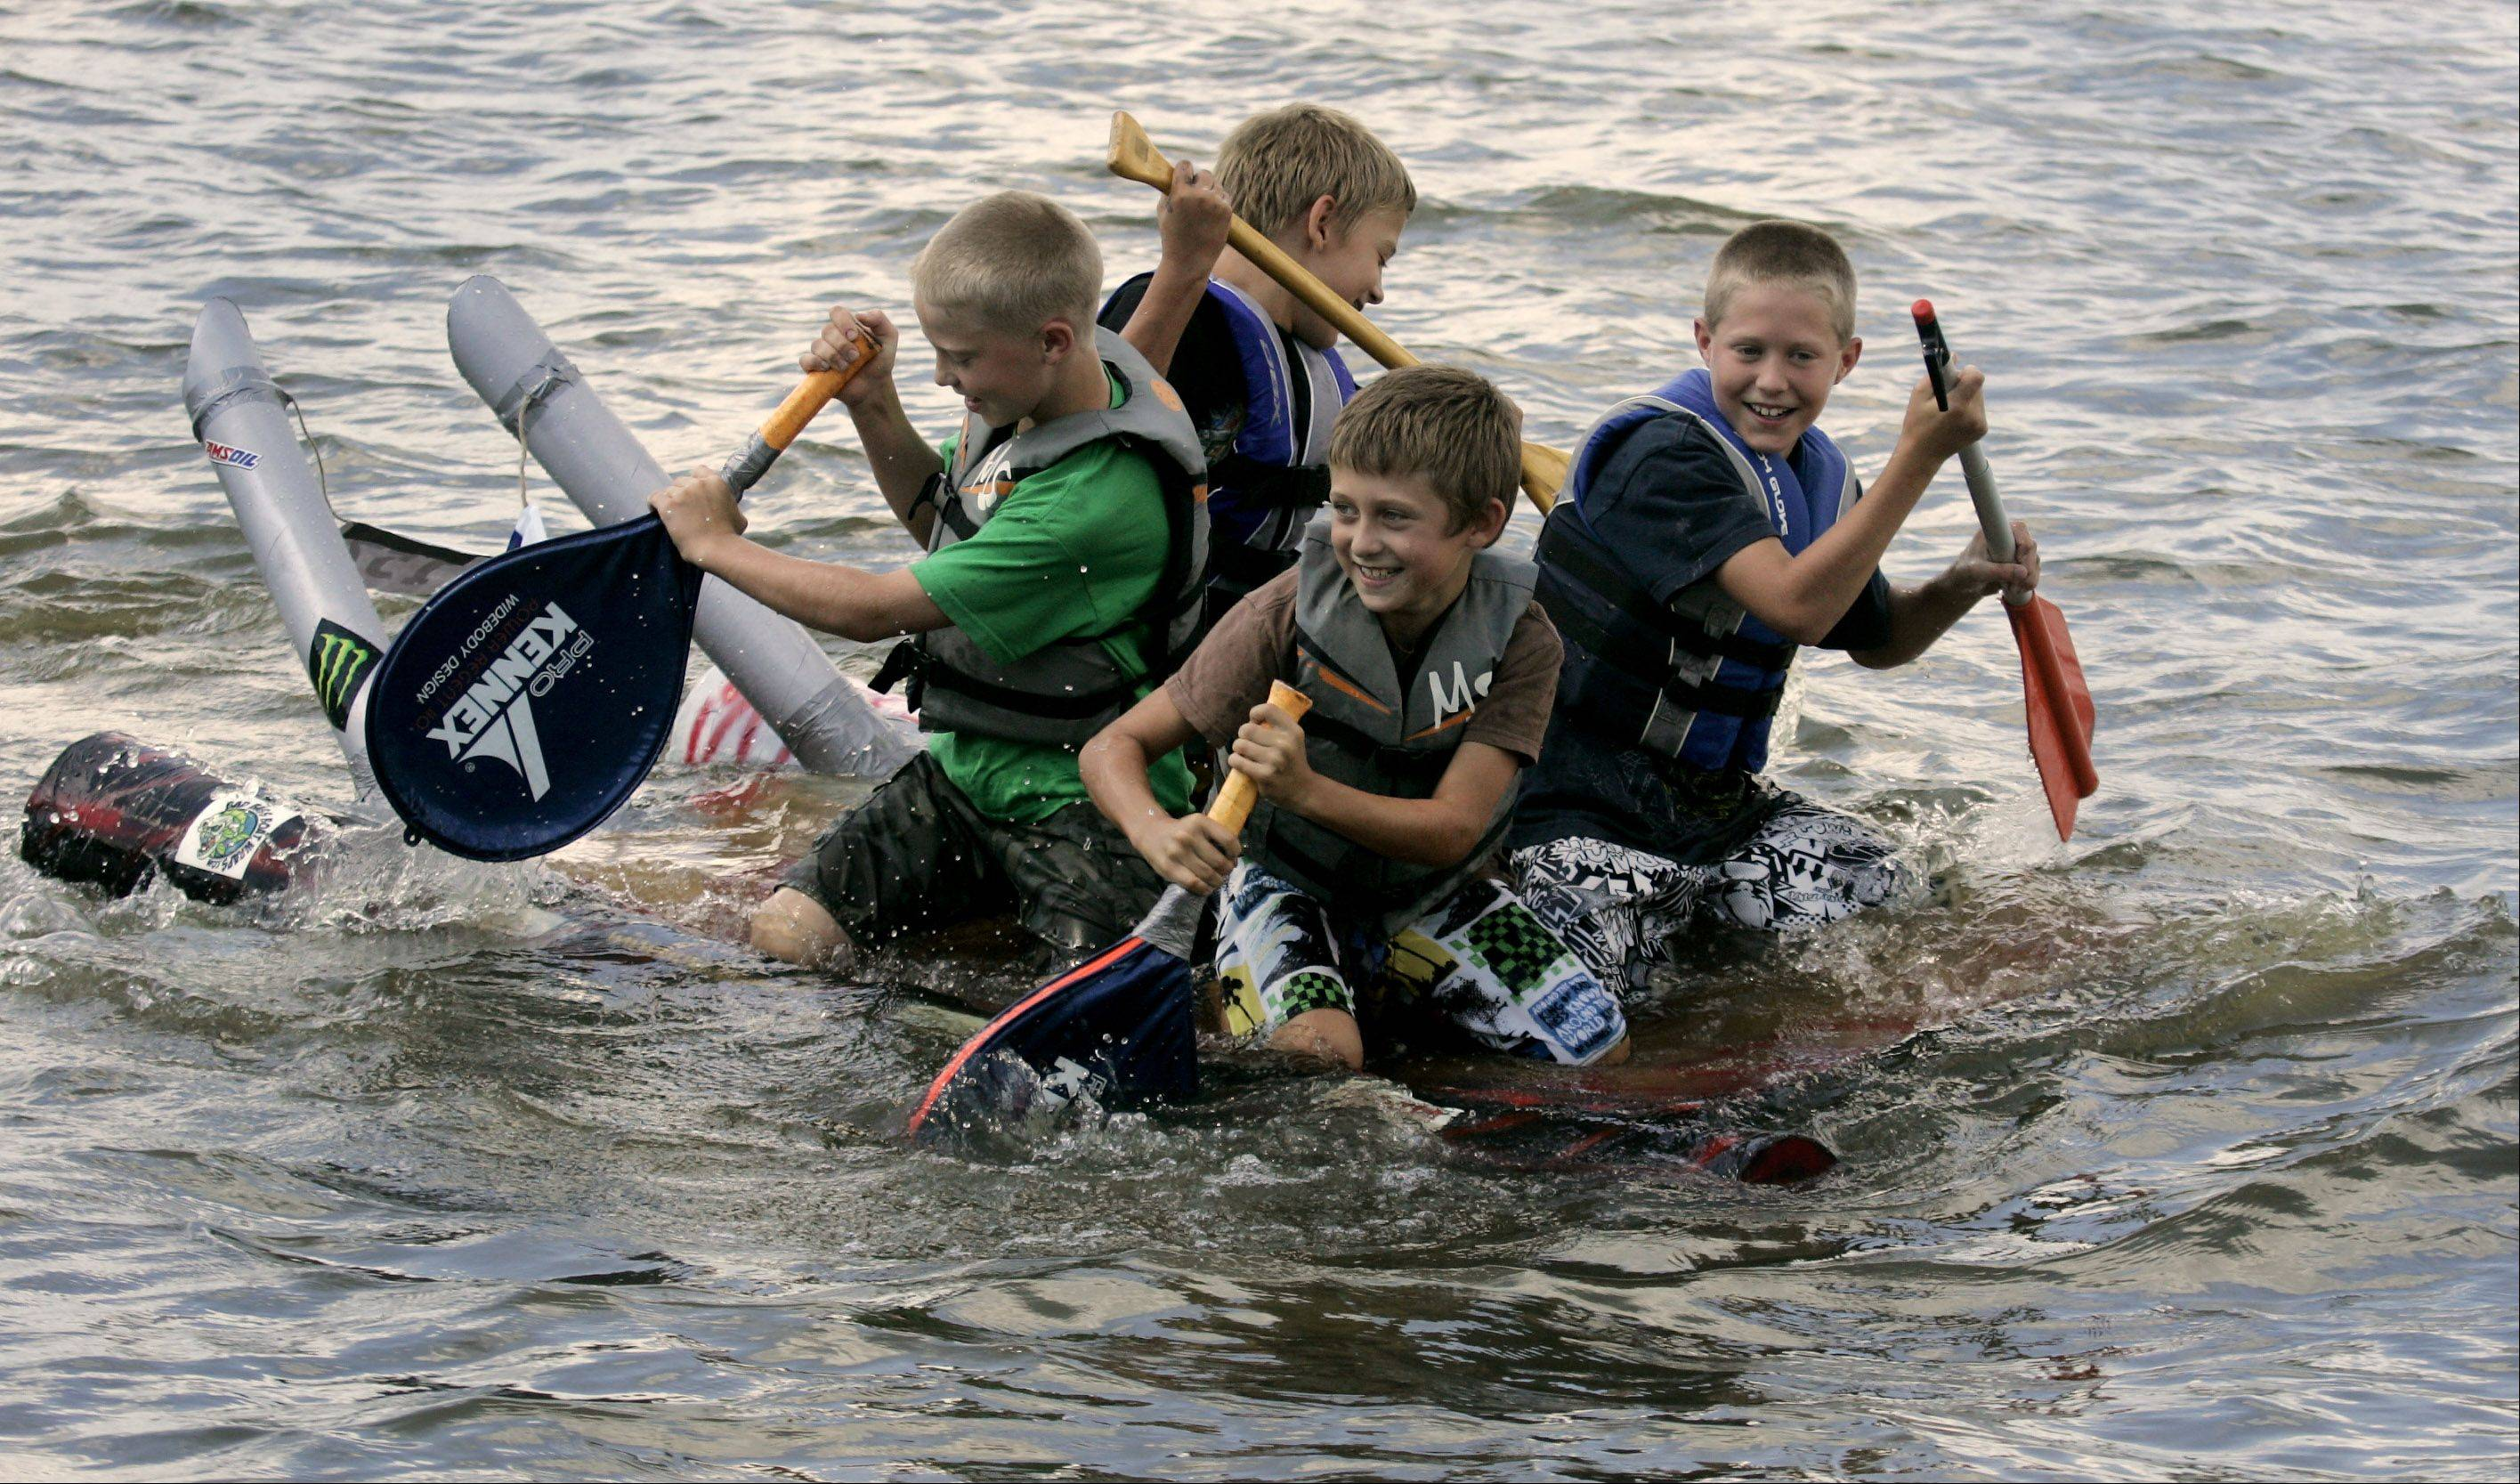 Tennis rackets were used as oars during last year's Fox Lake Cardboard Cup Regatta at Lakefront Park.